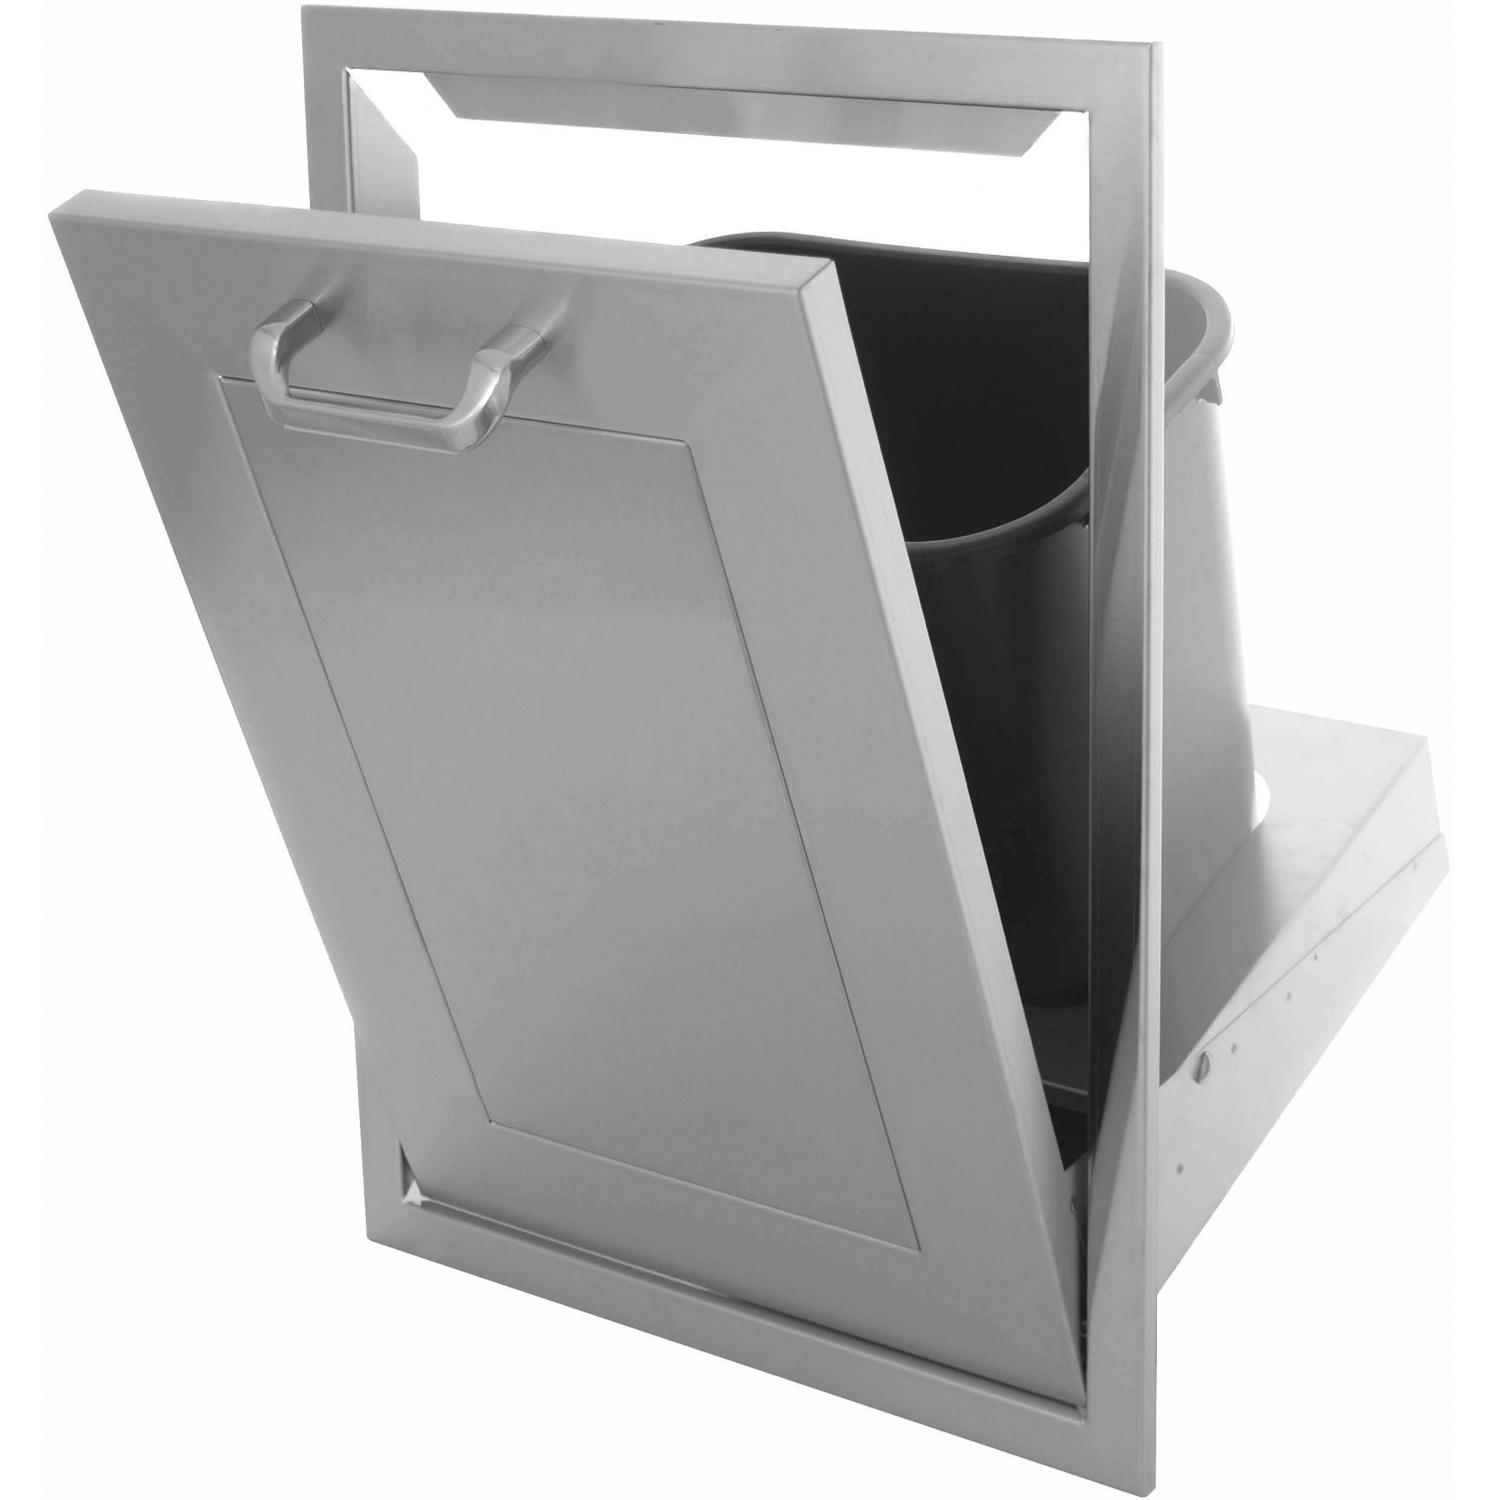 Kingston Panel Series Tilt-Out Trash Bin